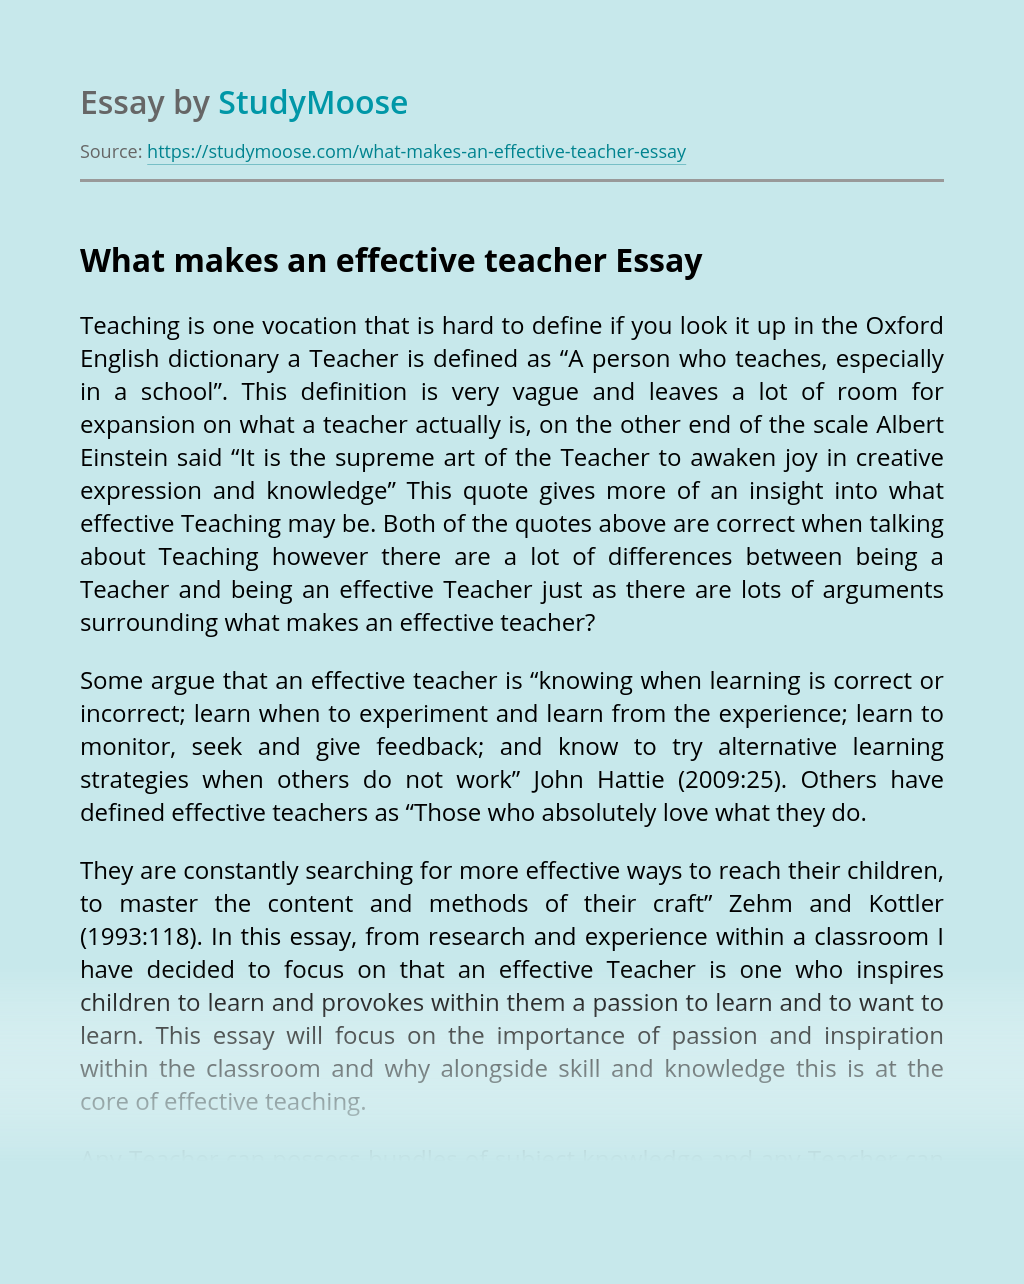 An Effective Teacher Essay